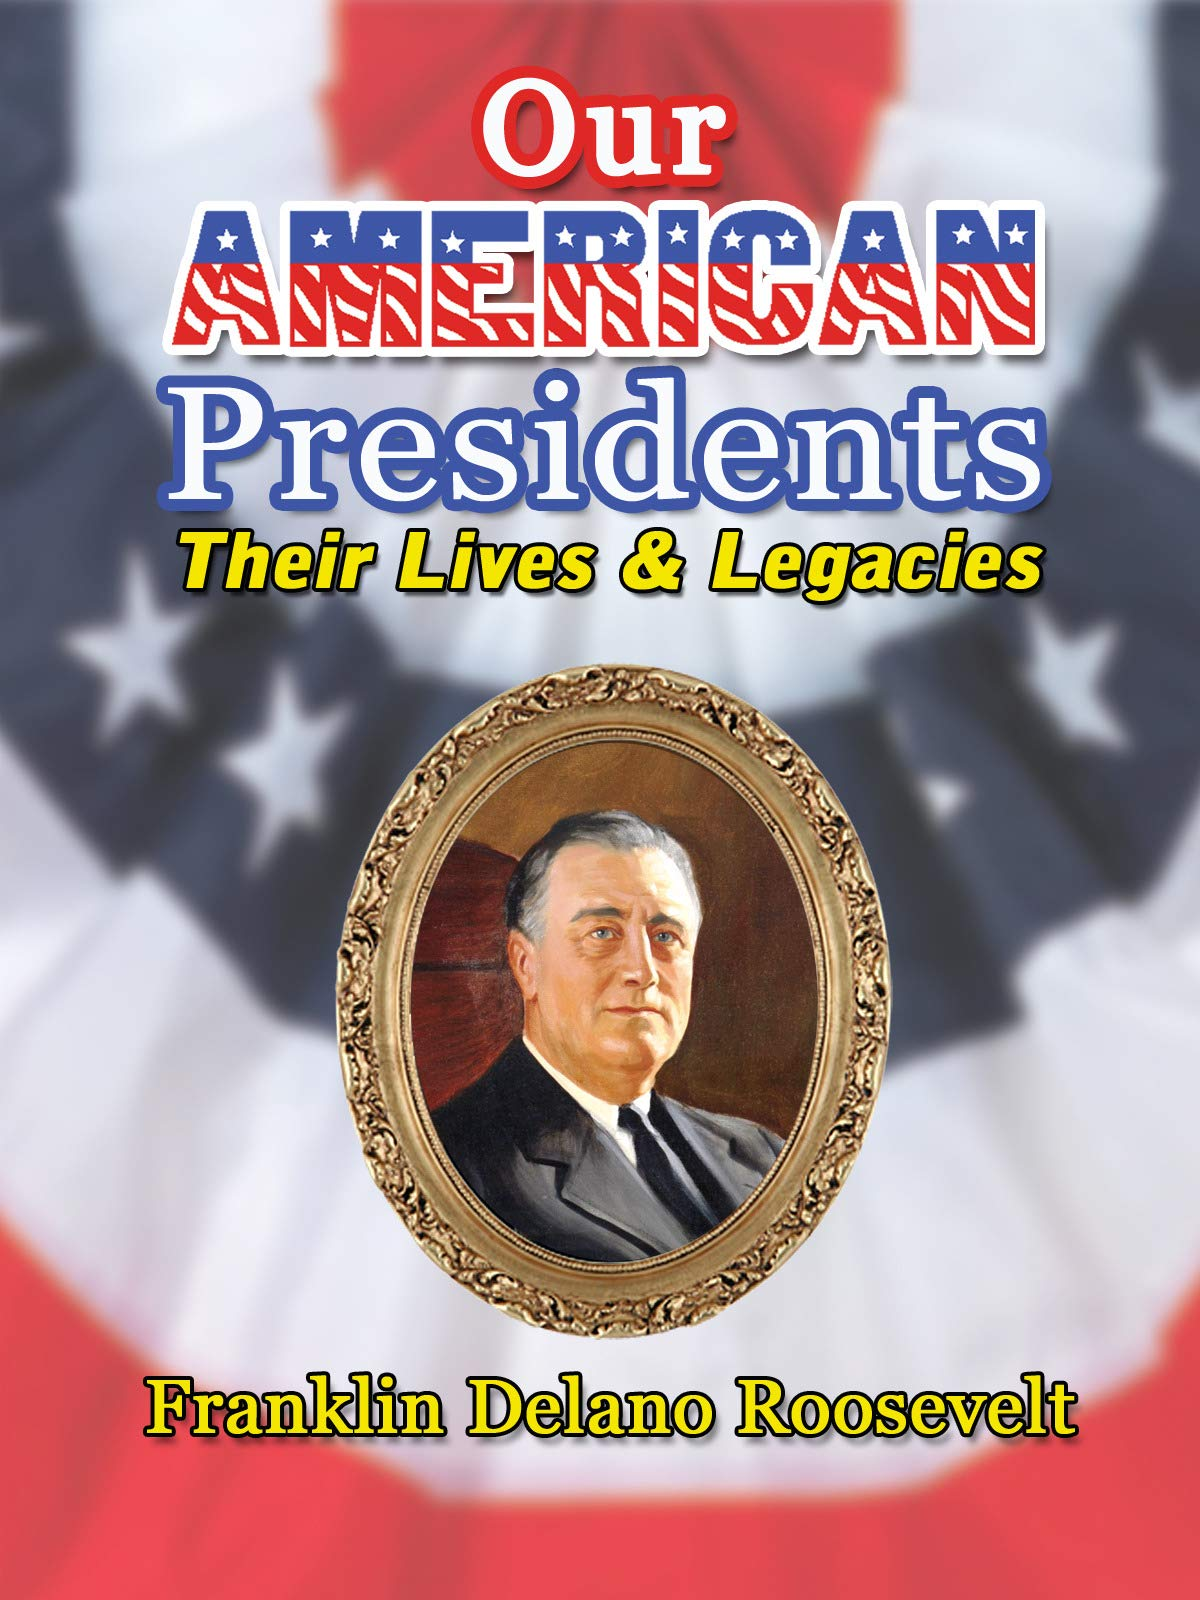 Our American Presidents - Their Lives and Legacies - Franklin Delano Roosevelt on Amazon Prime Video UK